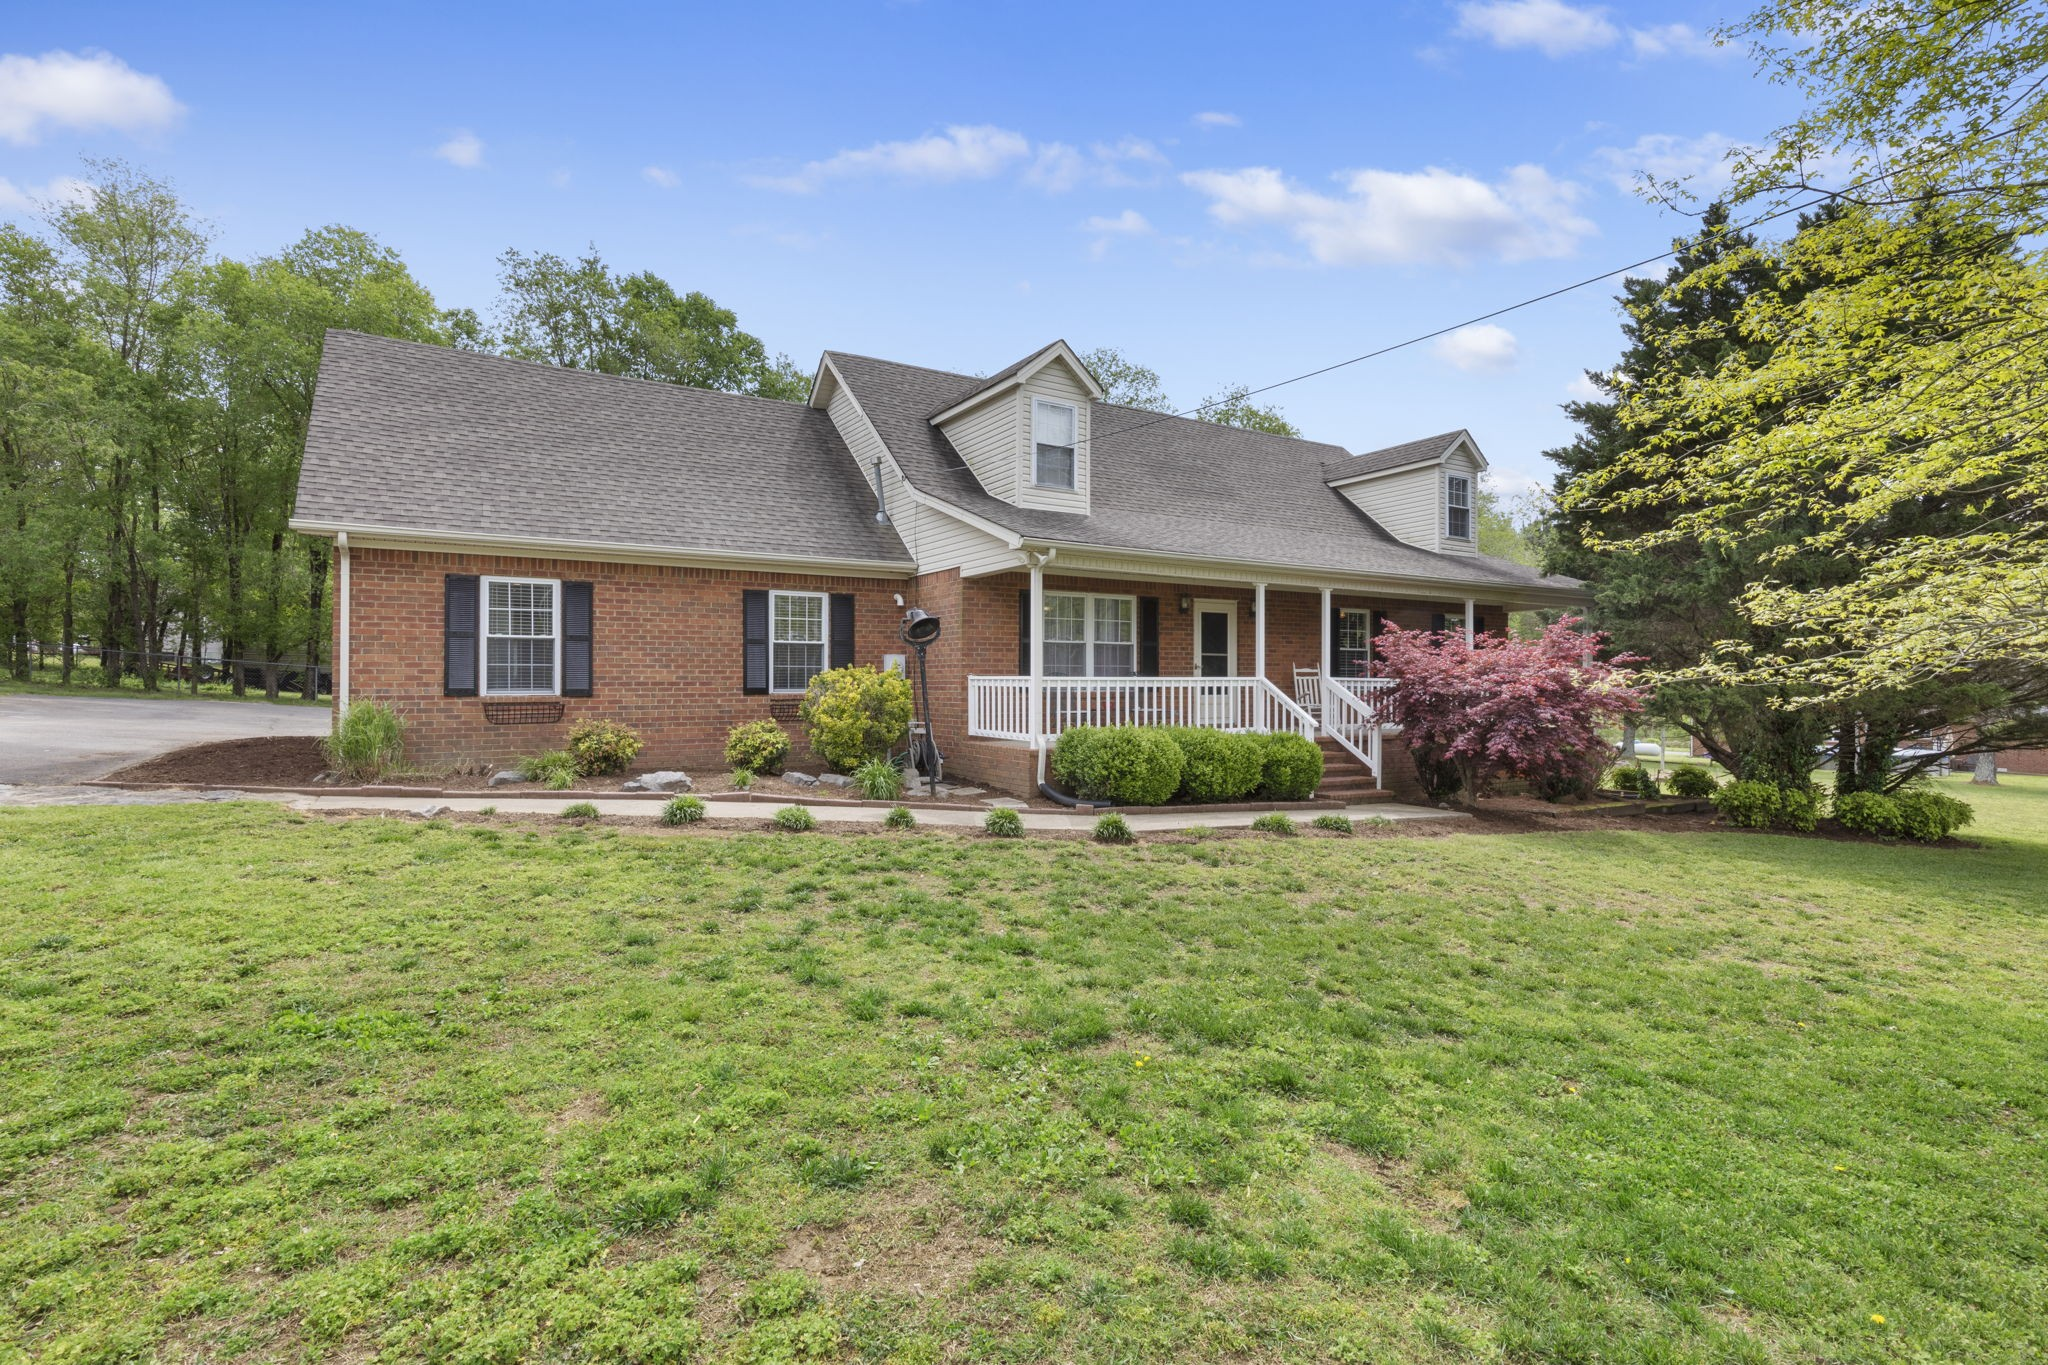 104 Erica Pl, Bell Buckle, TN 37020 - Bell Buckle, TN real estate listing